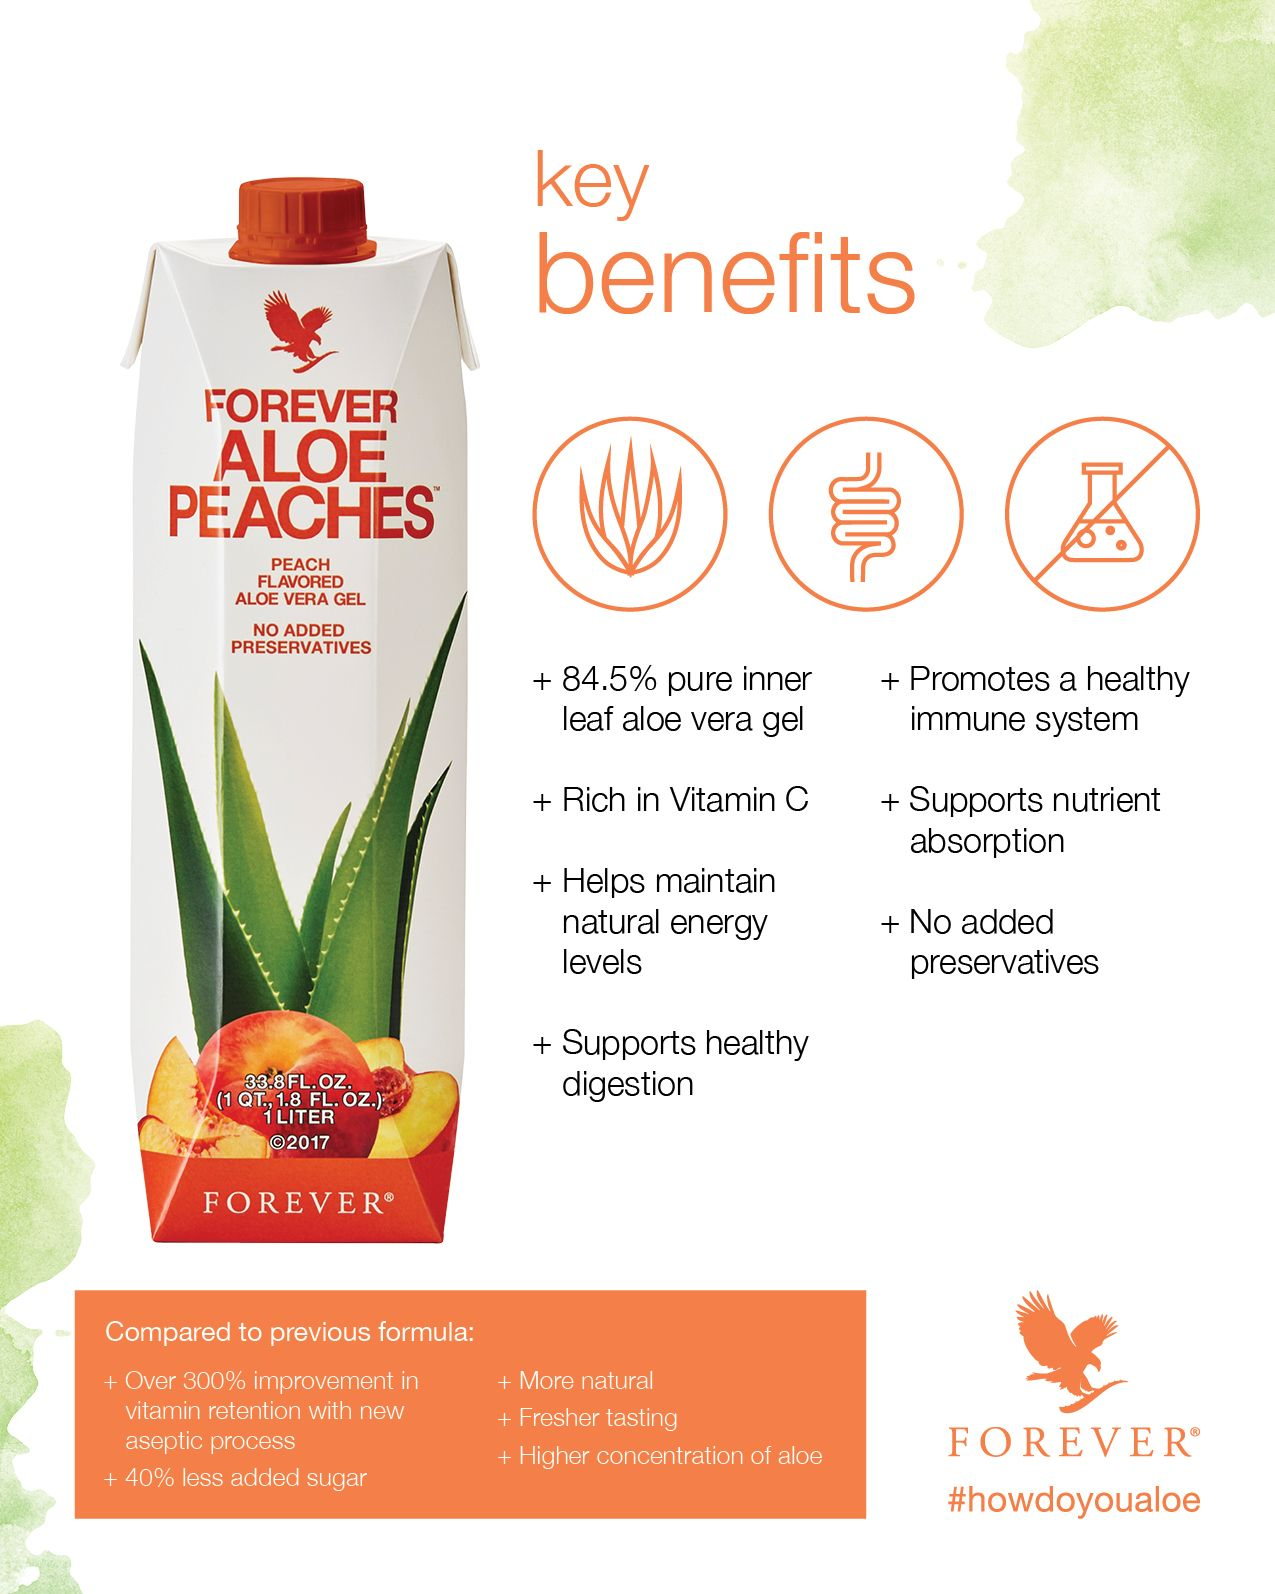 Discover The Benefits Of Forever Aloe Peaches Howdoyoualoe